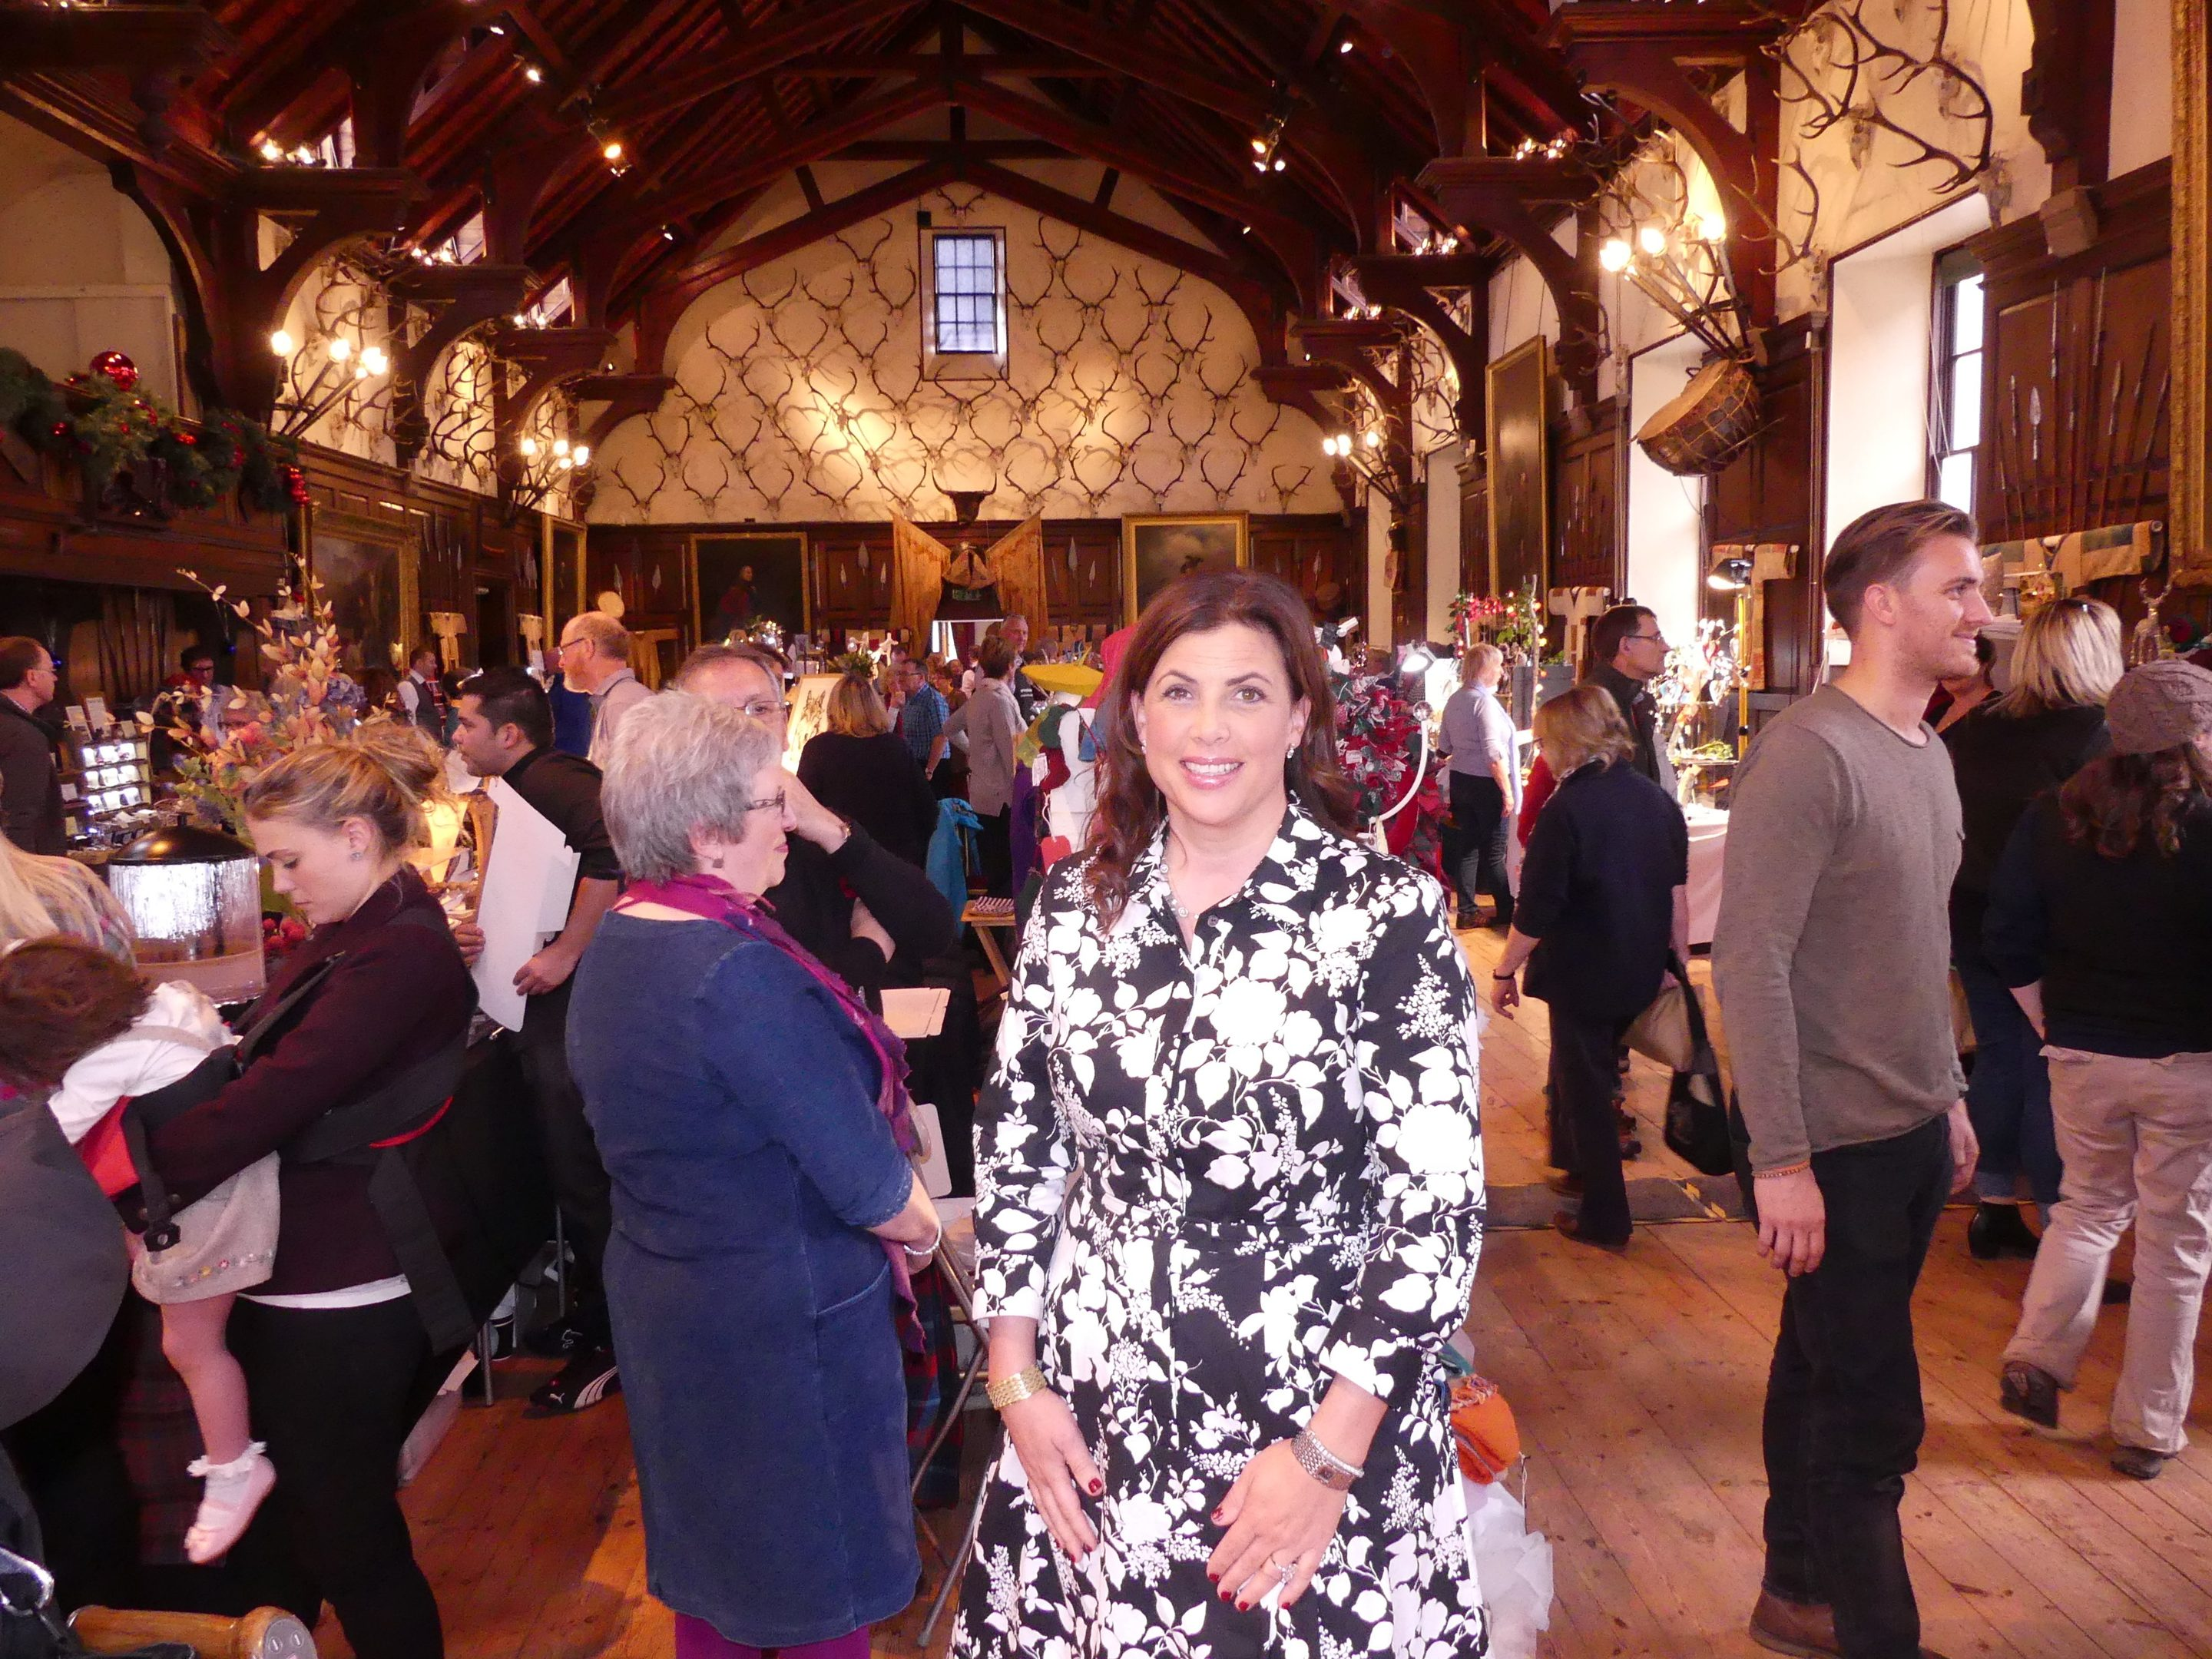 Kirstie Allsopp enjoys a craft fair at Blair Castle during filming for her Christmas show.